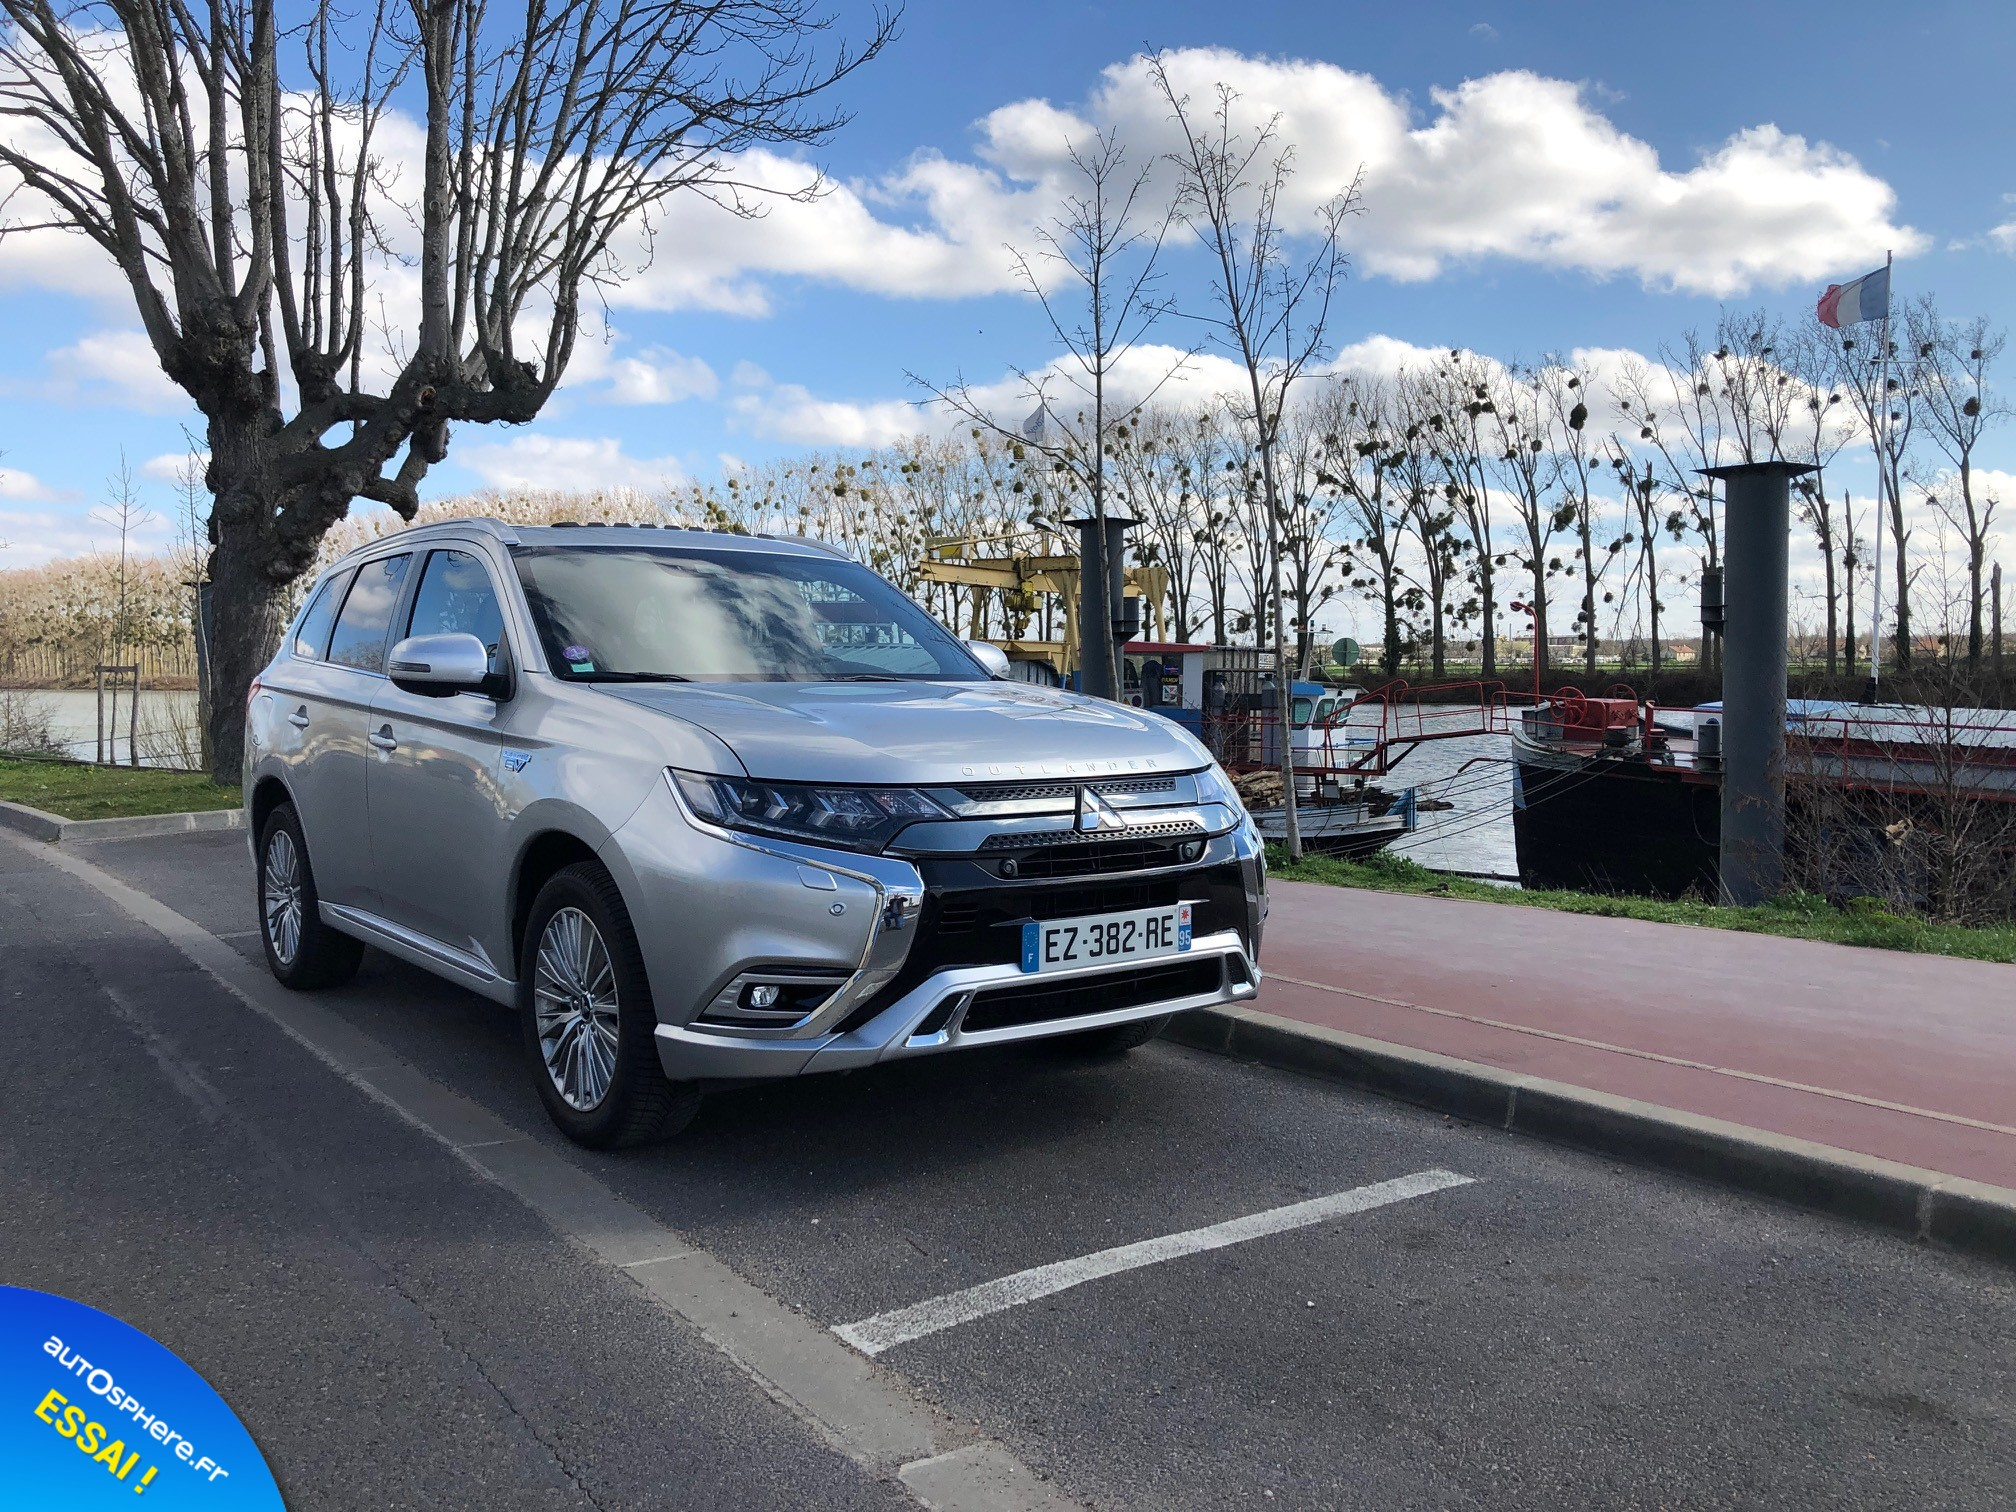 Essai Mitsubishi Outlander PHEV : Usage quotidien - Photo n°2